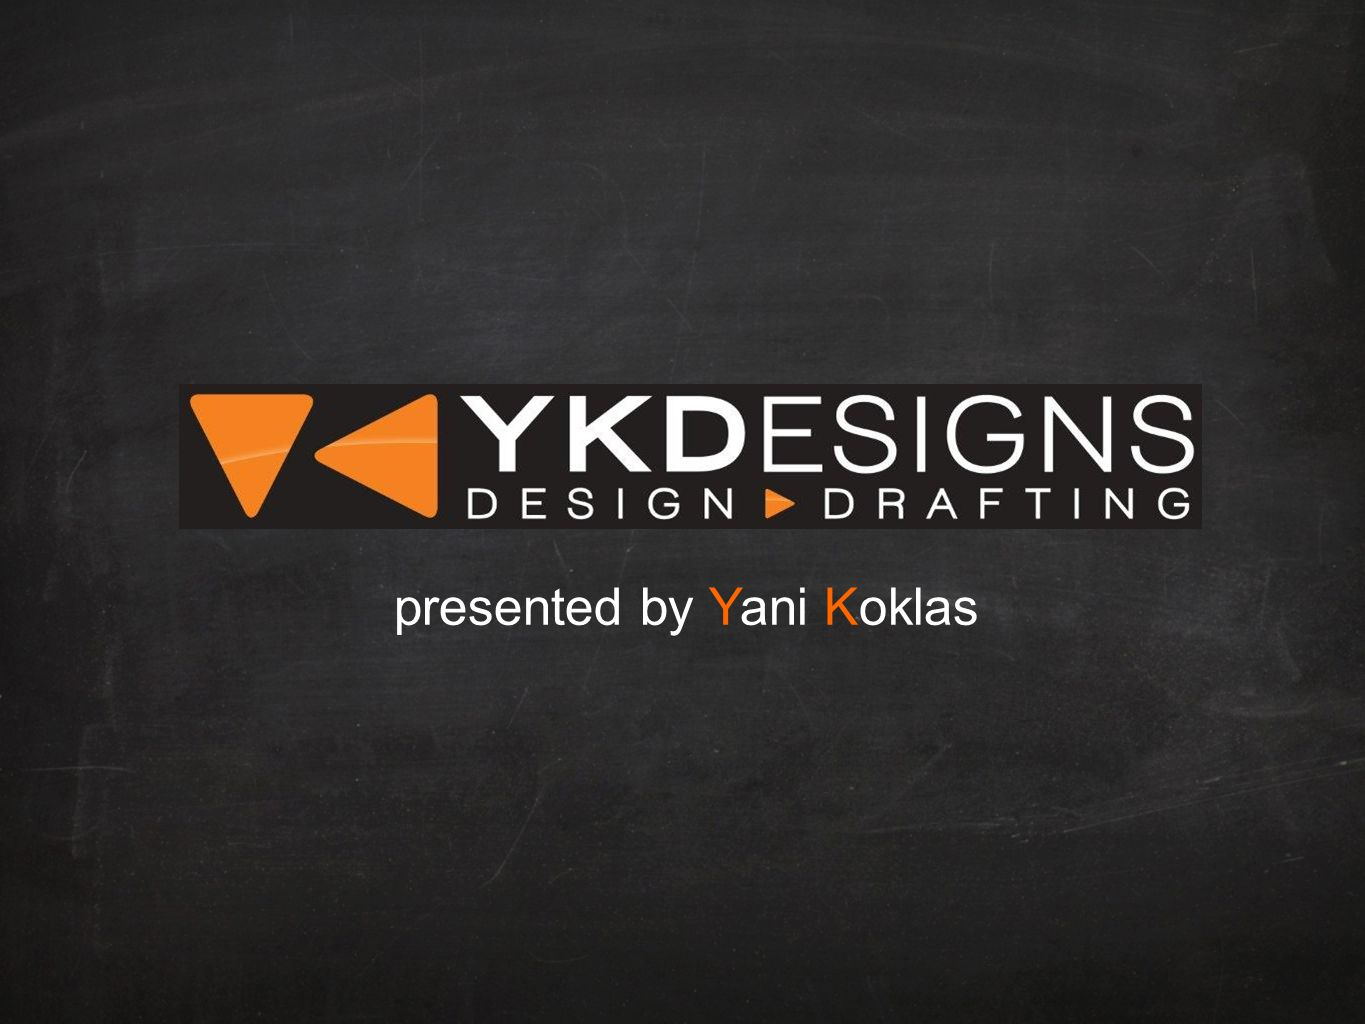 YKDesigns - who we are & what we do Your project - do's and don't Common issues affecting building projects Frequently asked questions what we'll be covering today